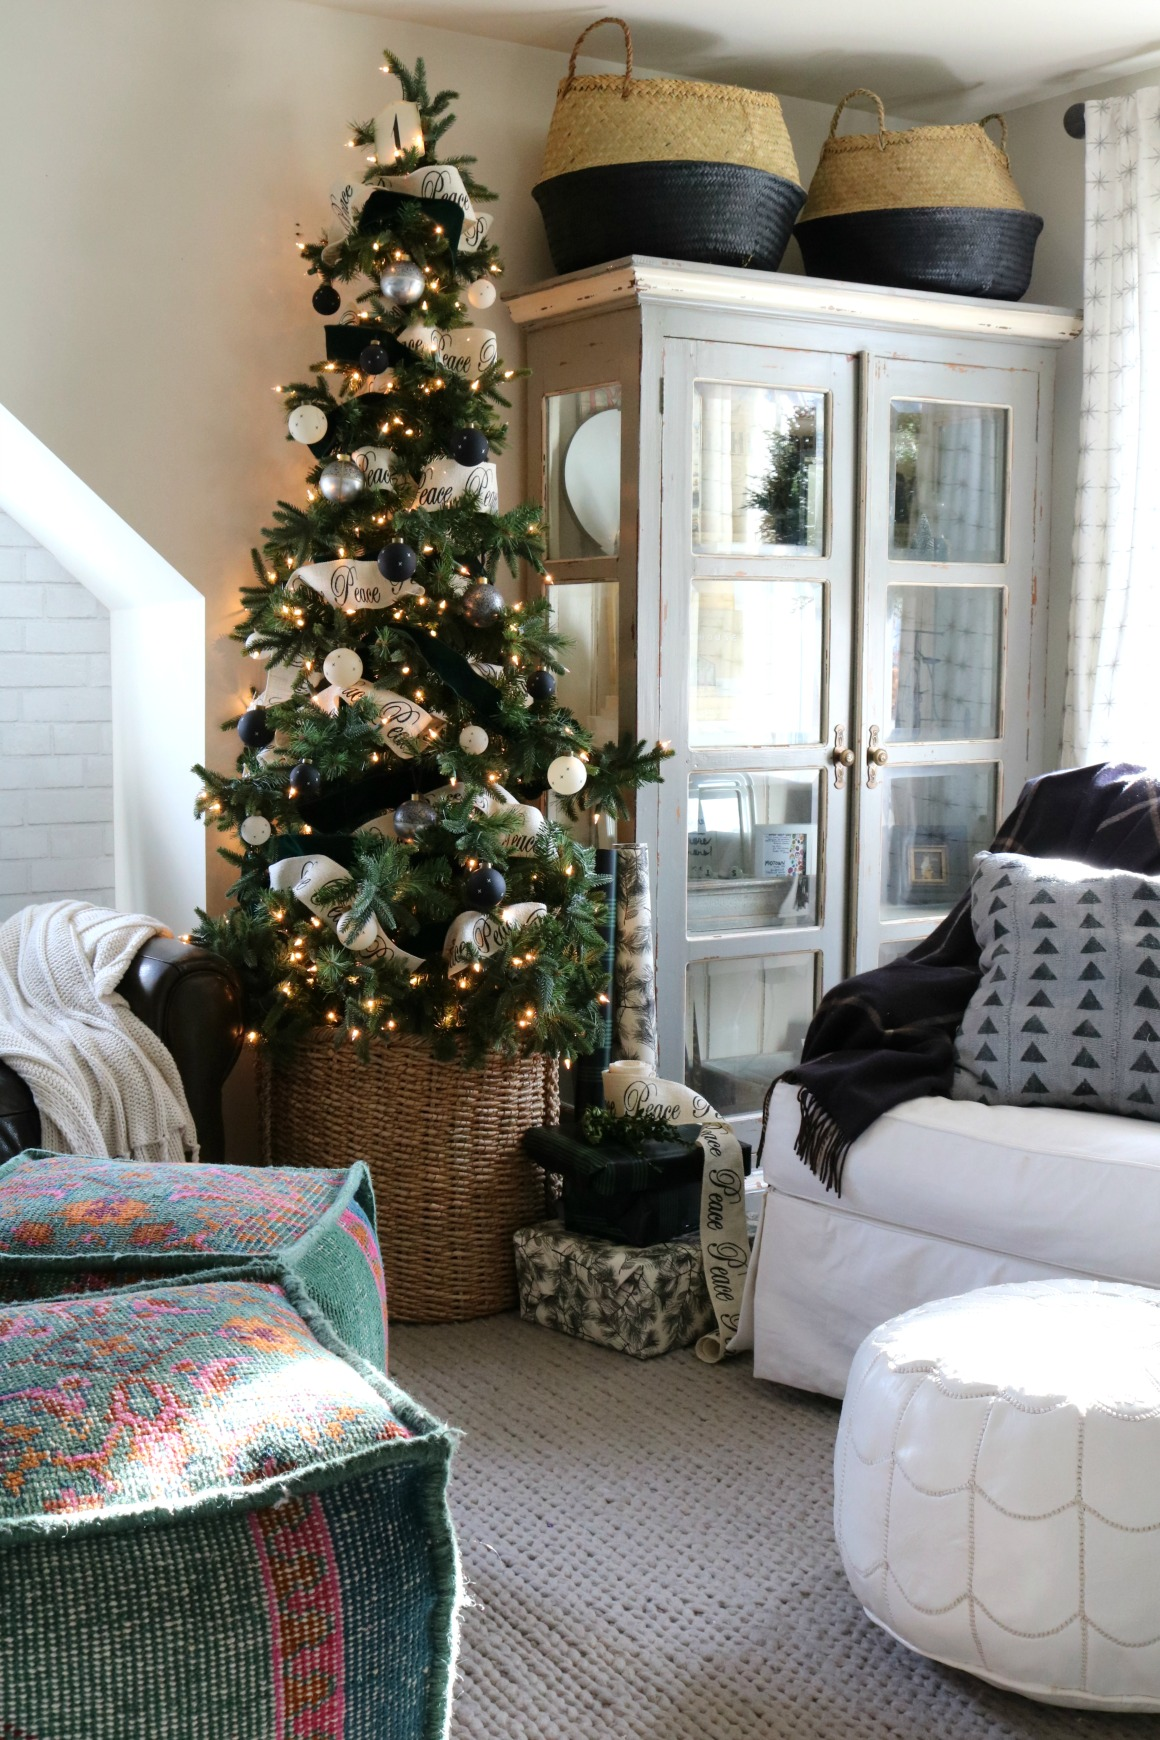 Christmas Ideas In A Small Space Upstairs Tour Nesting